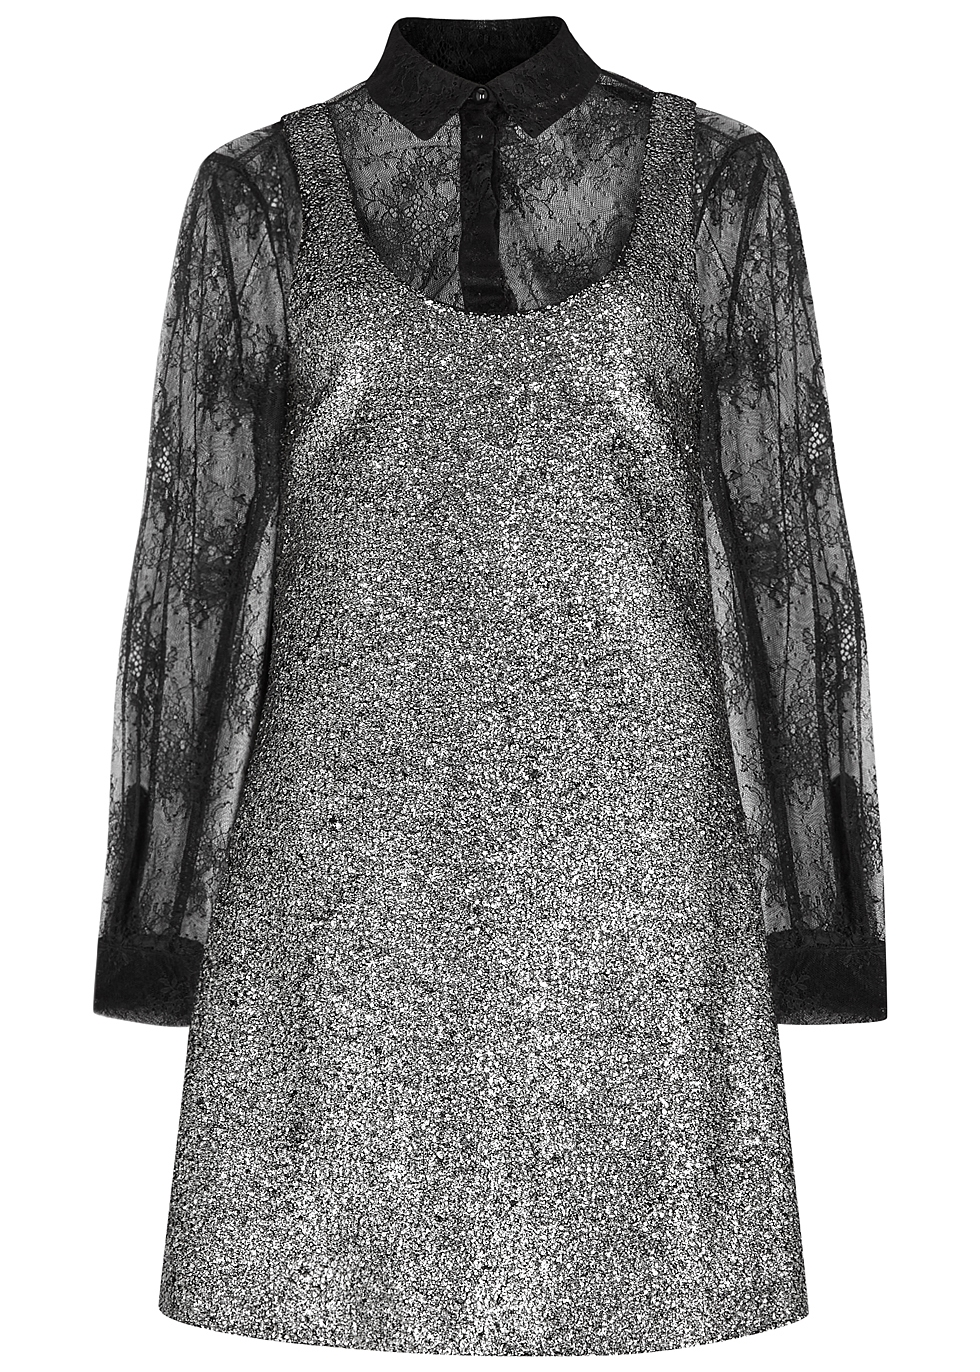 BOUTIQUE MOSCHINO SILVER BOUCLÉ AND LACE DRESS